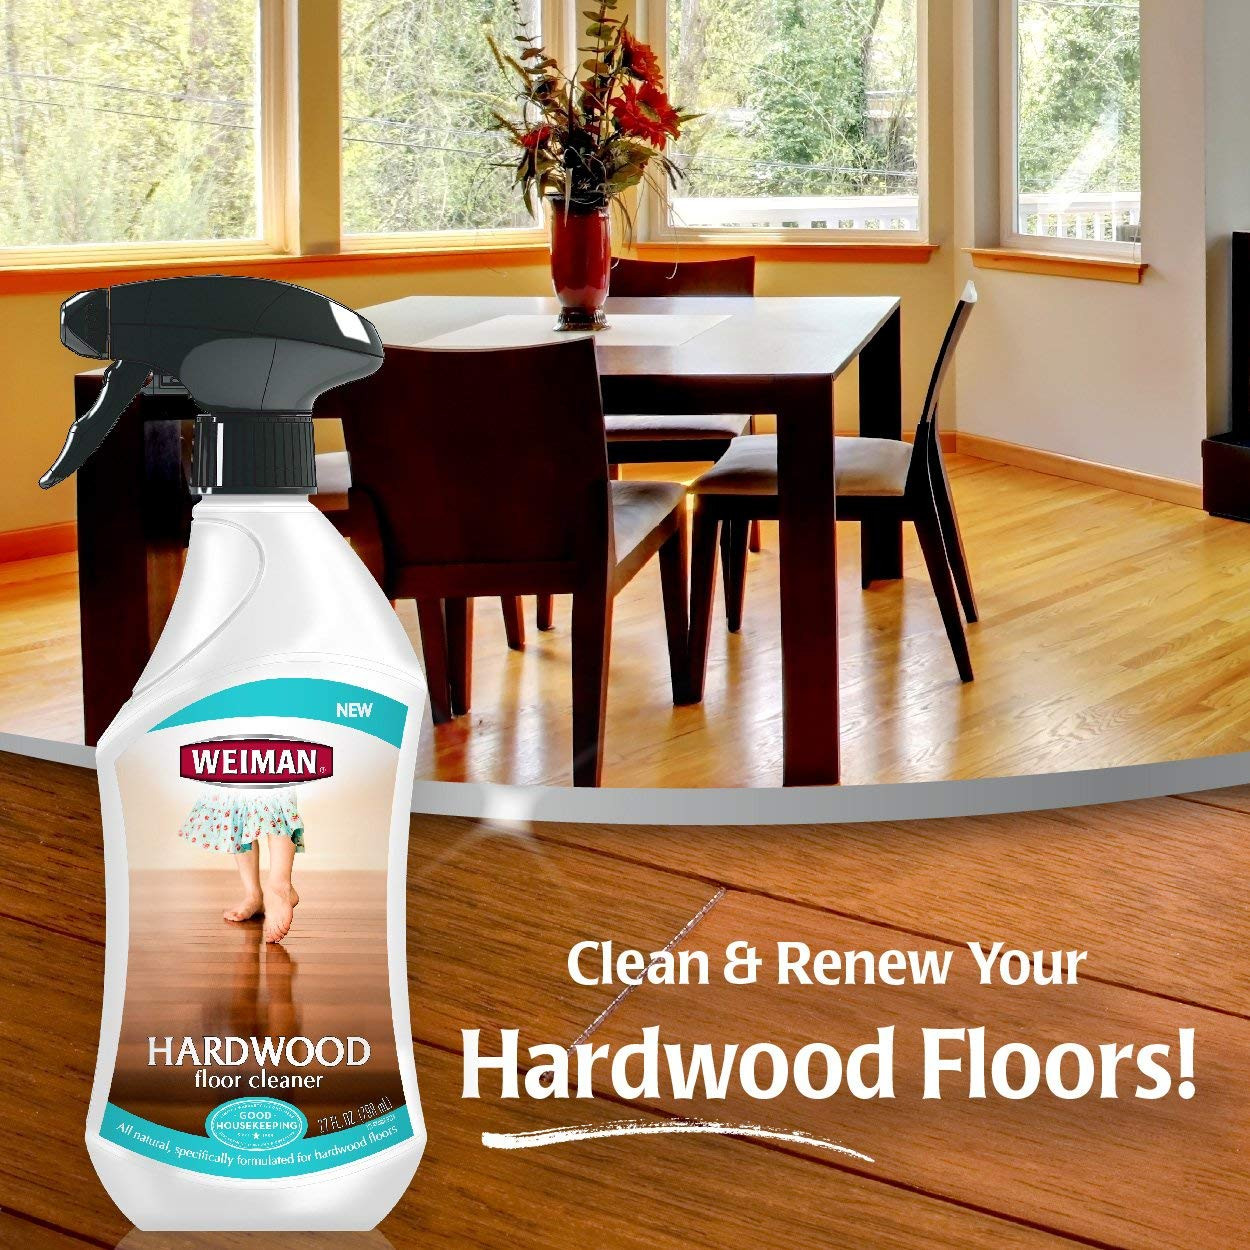 bamboo hardwood flooring reviews of amazon com weiman hardwood floor cleaner surface safe no harsh regarding amazon com weiman hardwood floor cleaner surface safe no harsh scent safe for use around kids and pets residue free 27 oz trigger home kitchen